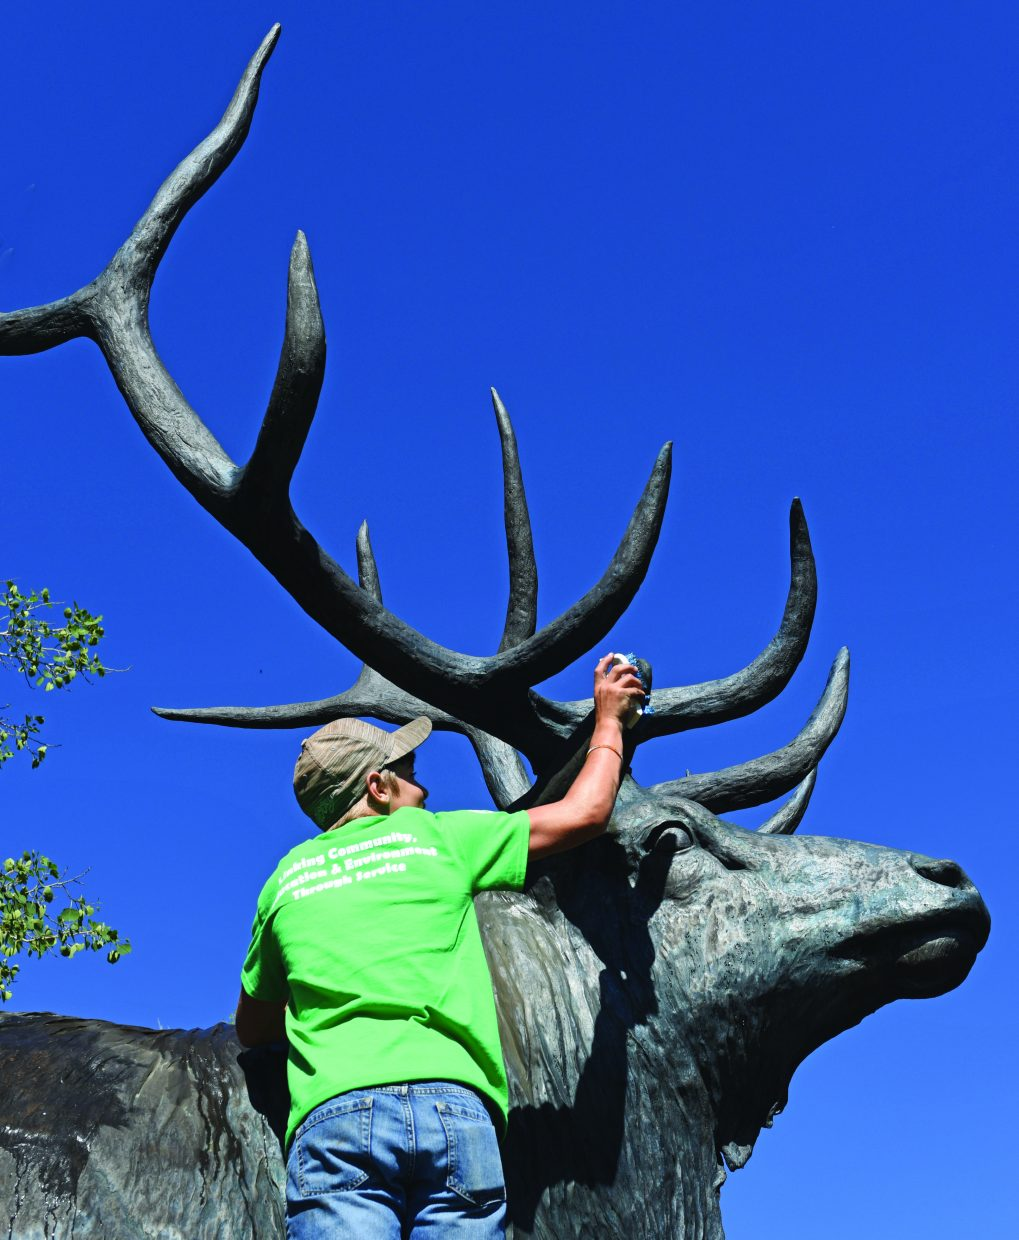 Daylon Frentress cleans the elk statue in West Lincoln Park Monday morning while working with the Rocky Mountain Youth Corps Community Development Program. A crew leader said the group plans to clean and wax several sculptures in the area over the next several days.